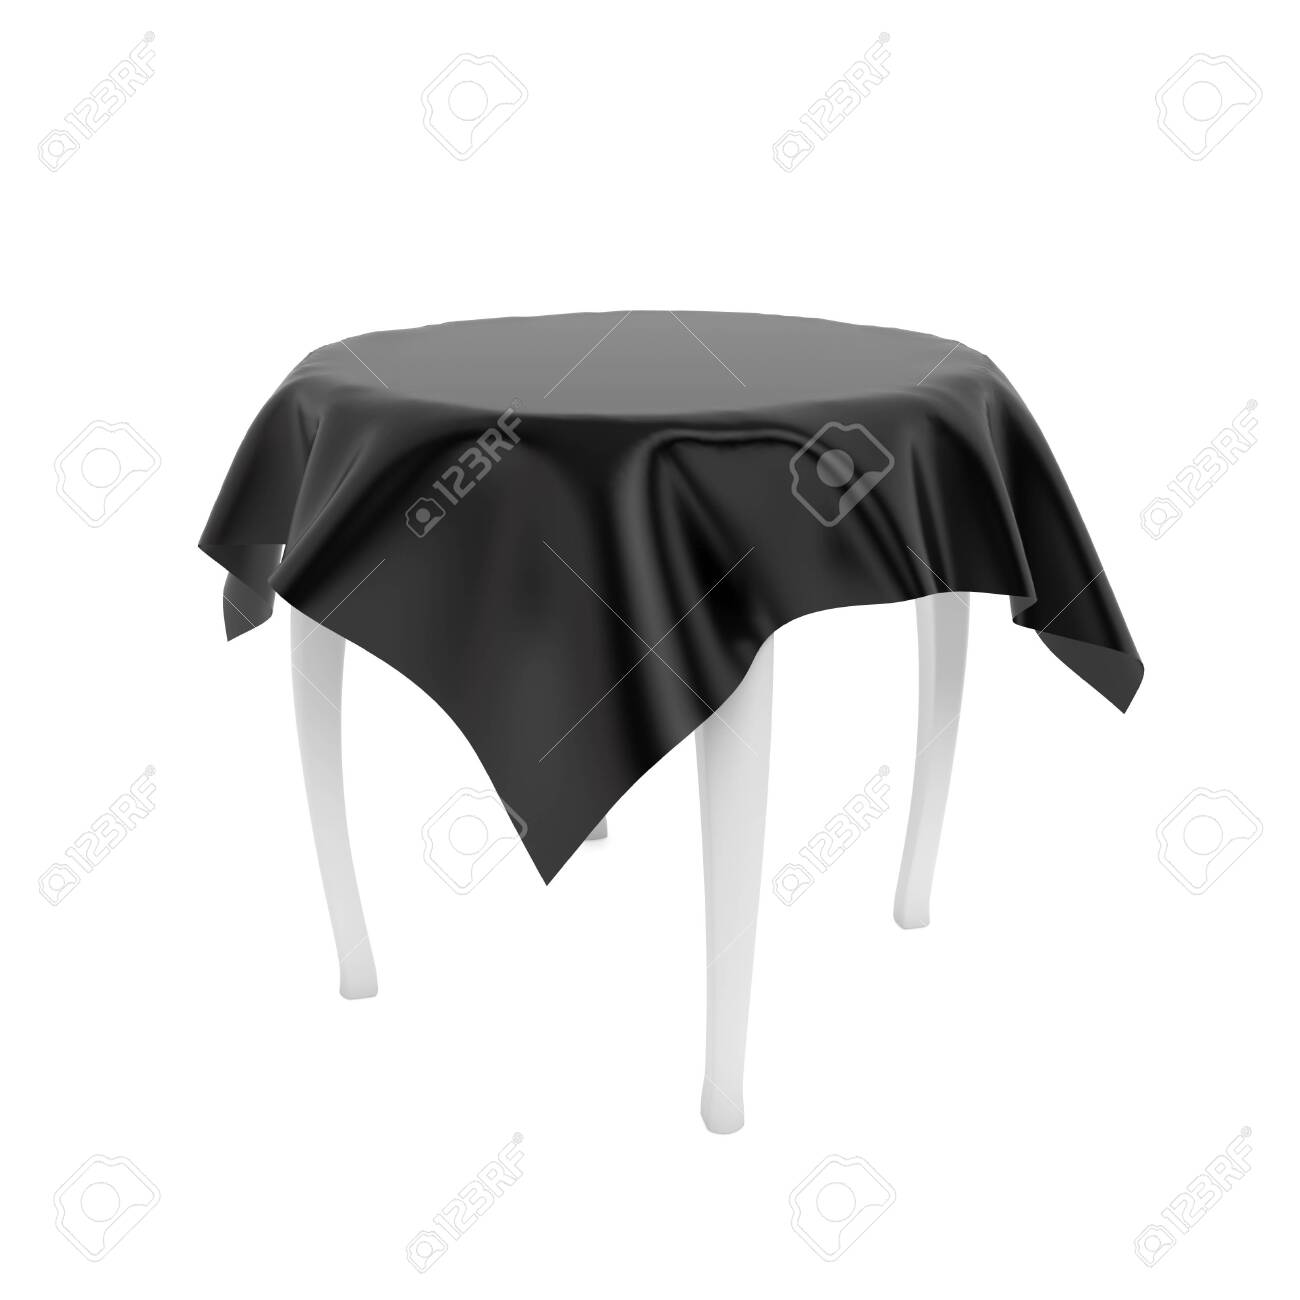 White round table with black tablecloth. 3d rendering illustration isolated on white background - 150186374